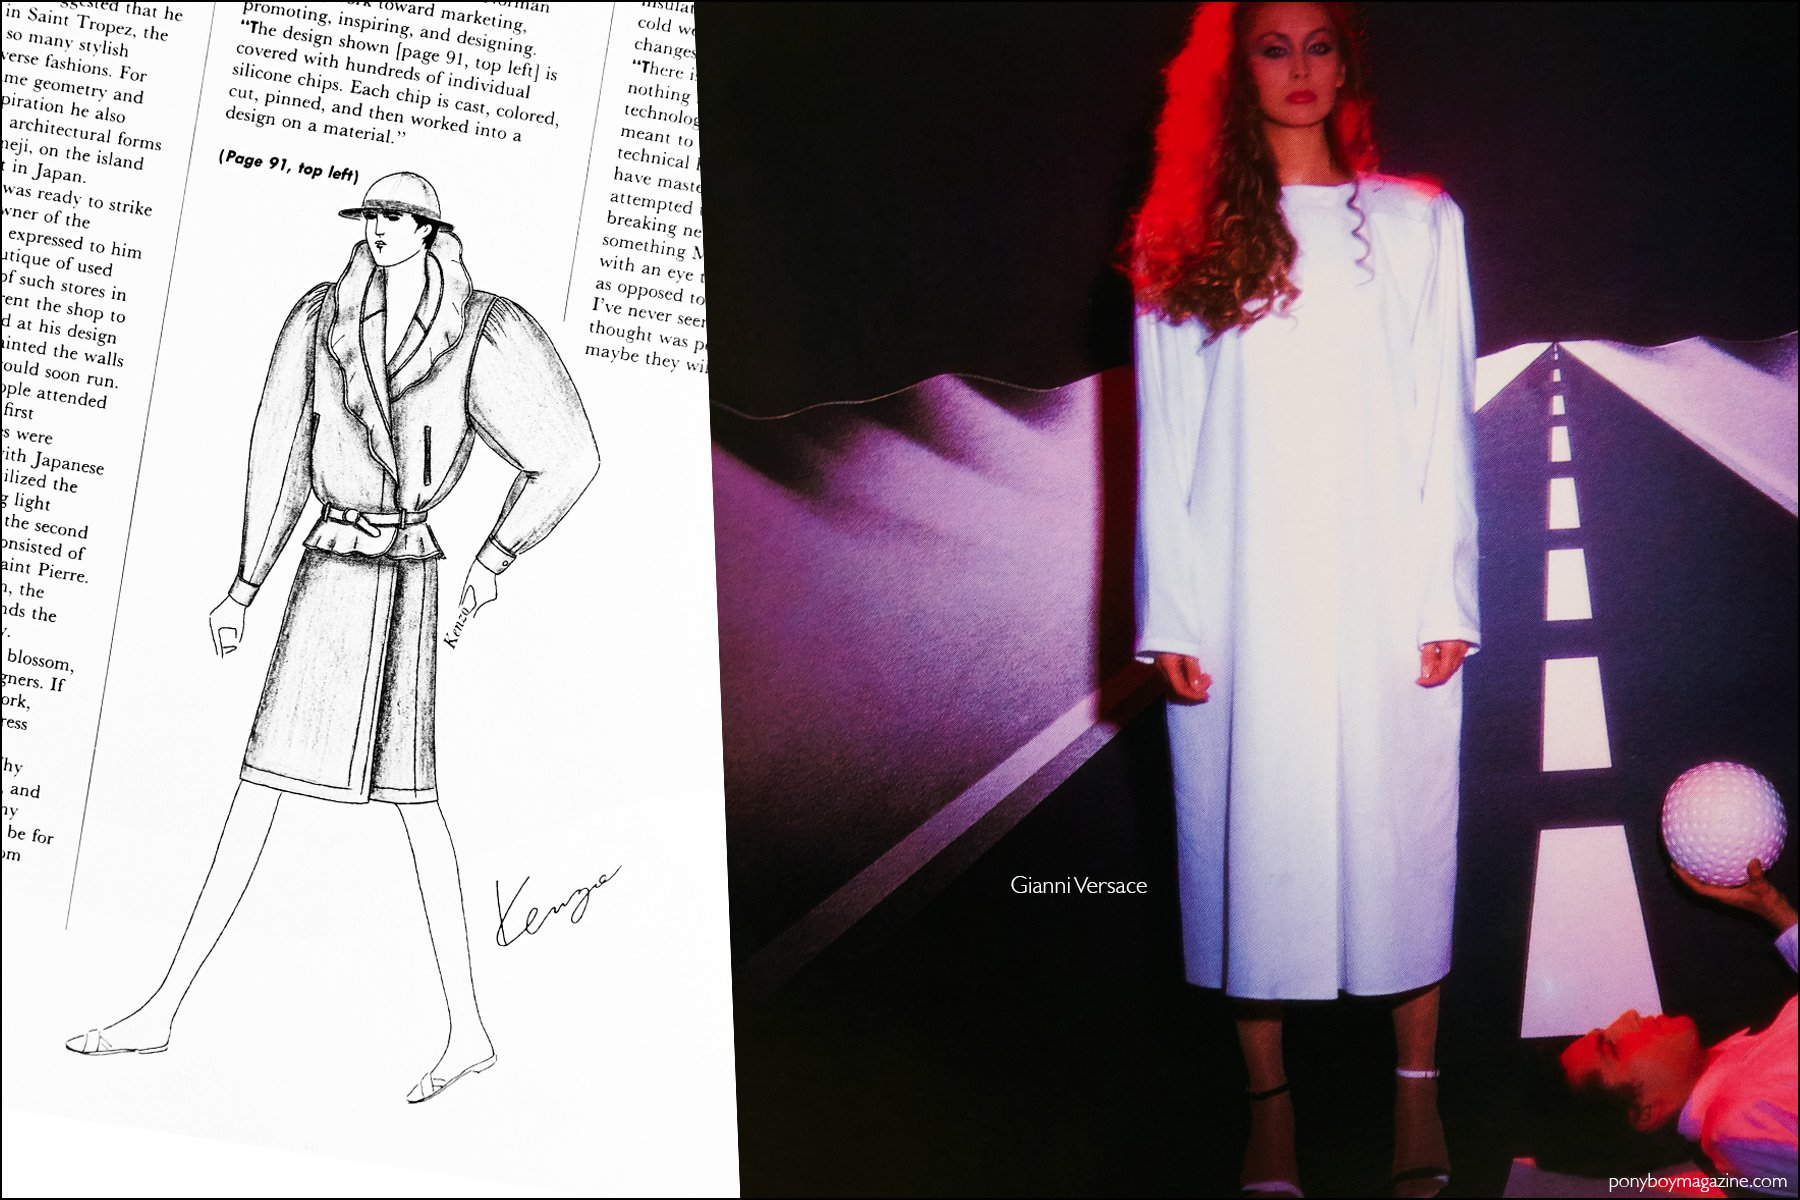 A fashion sketch by Kenzo, as well as a fashion photo featuring a Gianni Versace design, from the book Fashion: 2001 by Lucille Khornak. Ponyboy magazine NY.